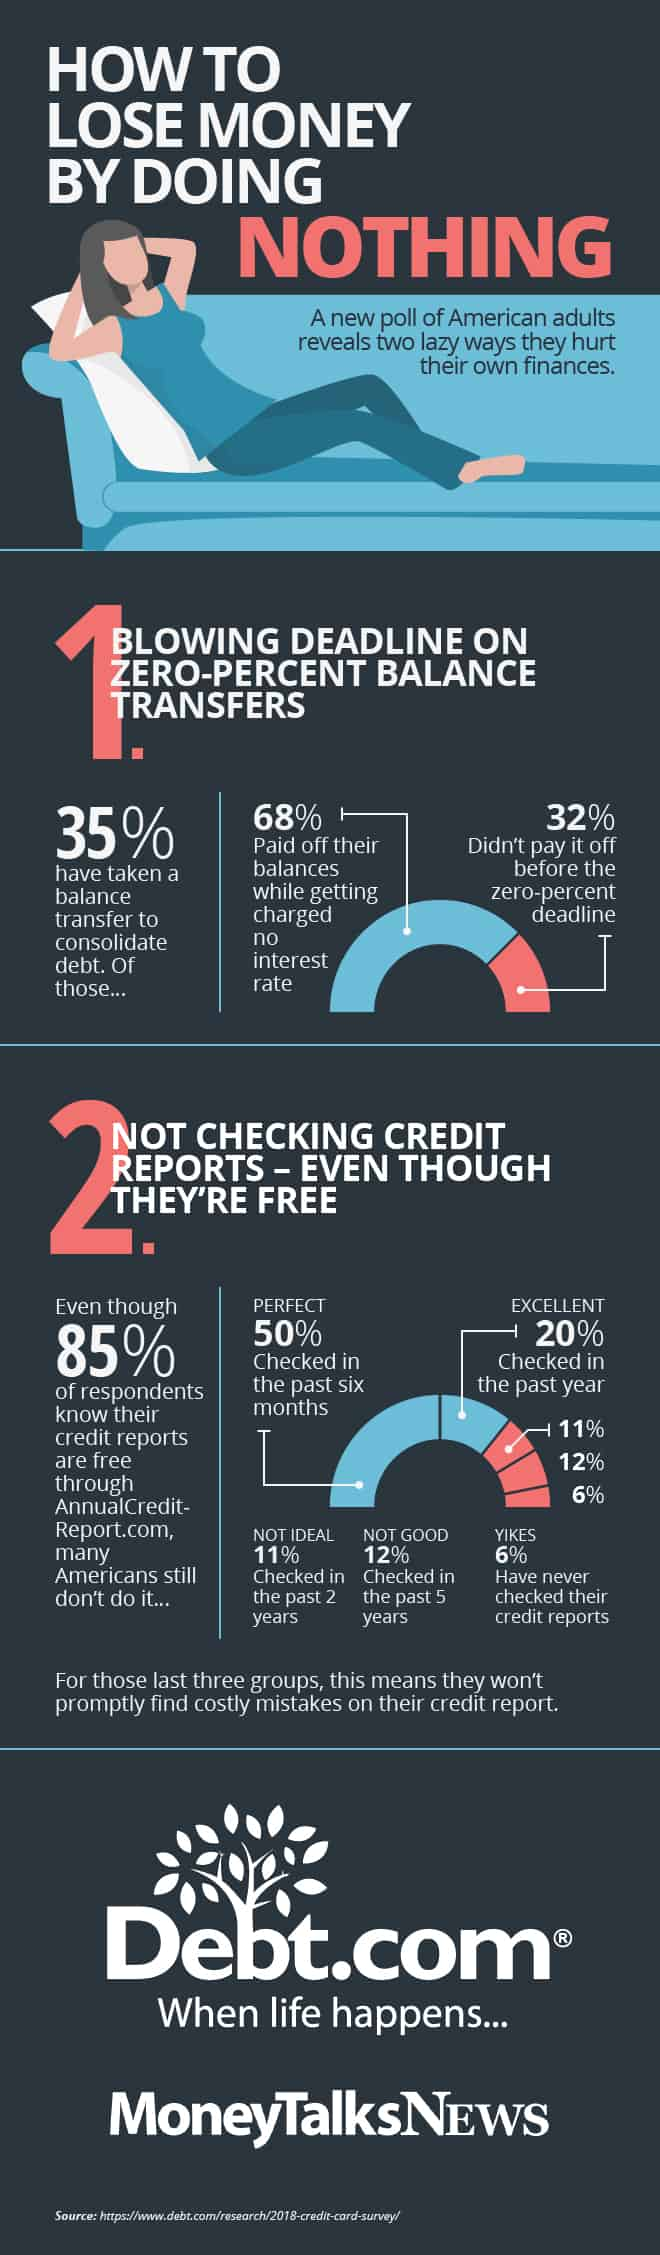 This infographic reveals two bad credit habits that cost consumers money because of what they don't do